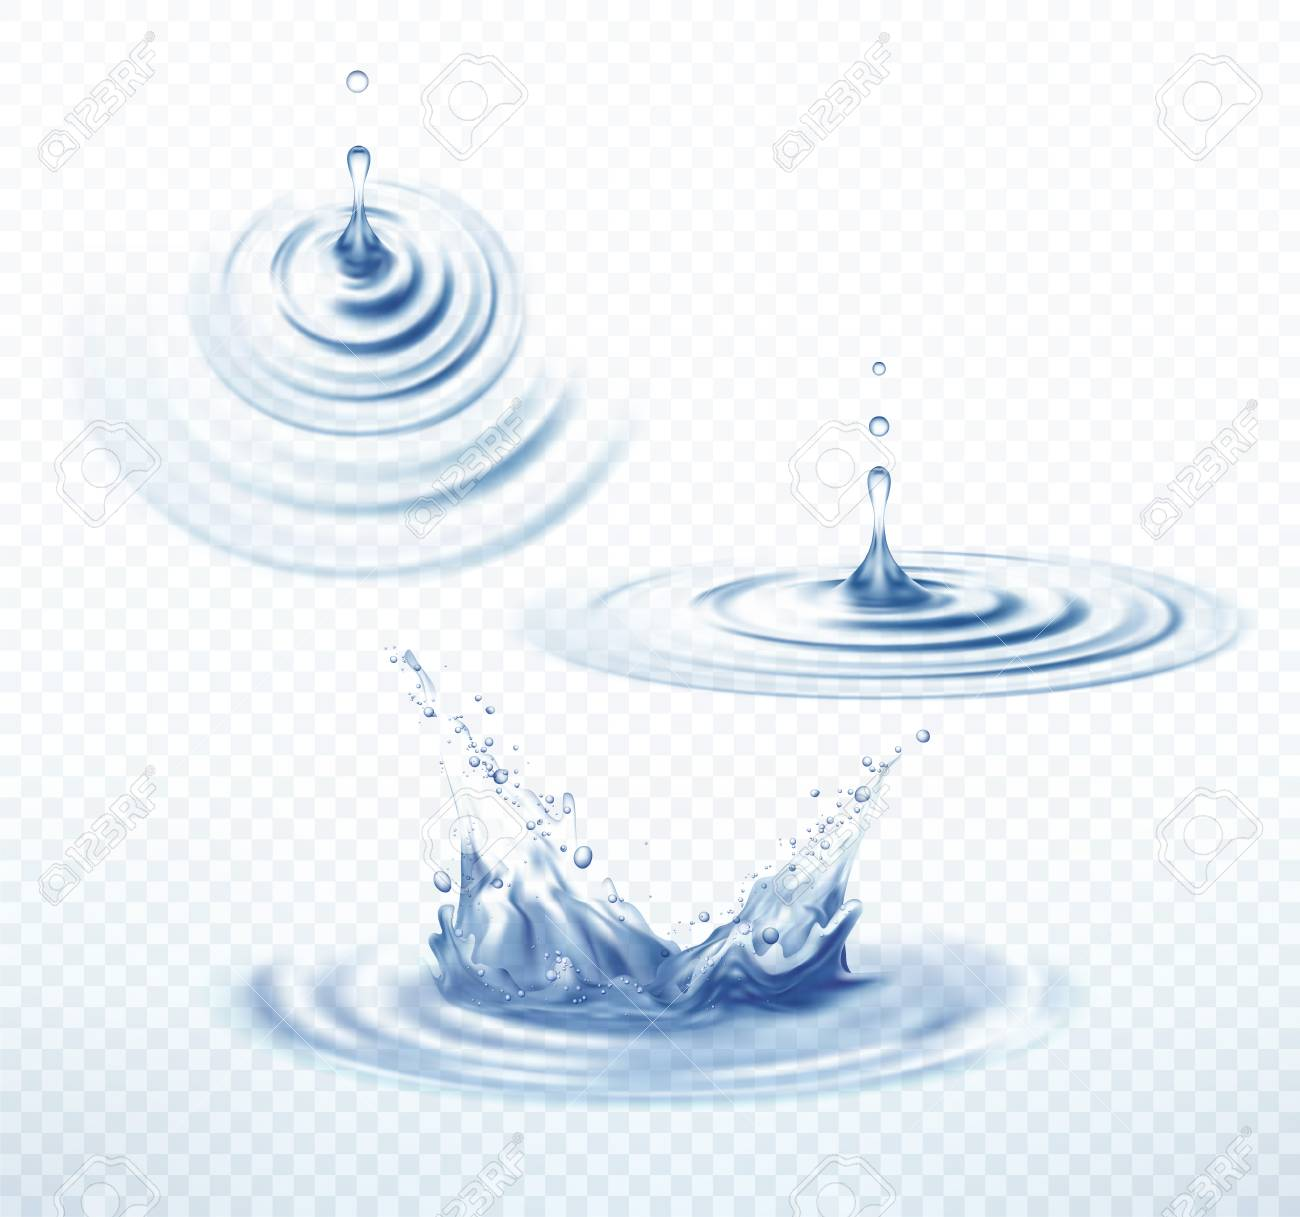 Realistic Transparent Drop and Circle Ripples set on isolated background. Vector illustration - 80329930